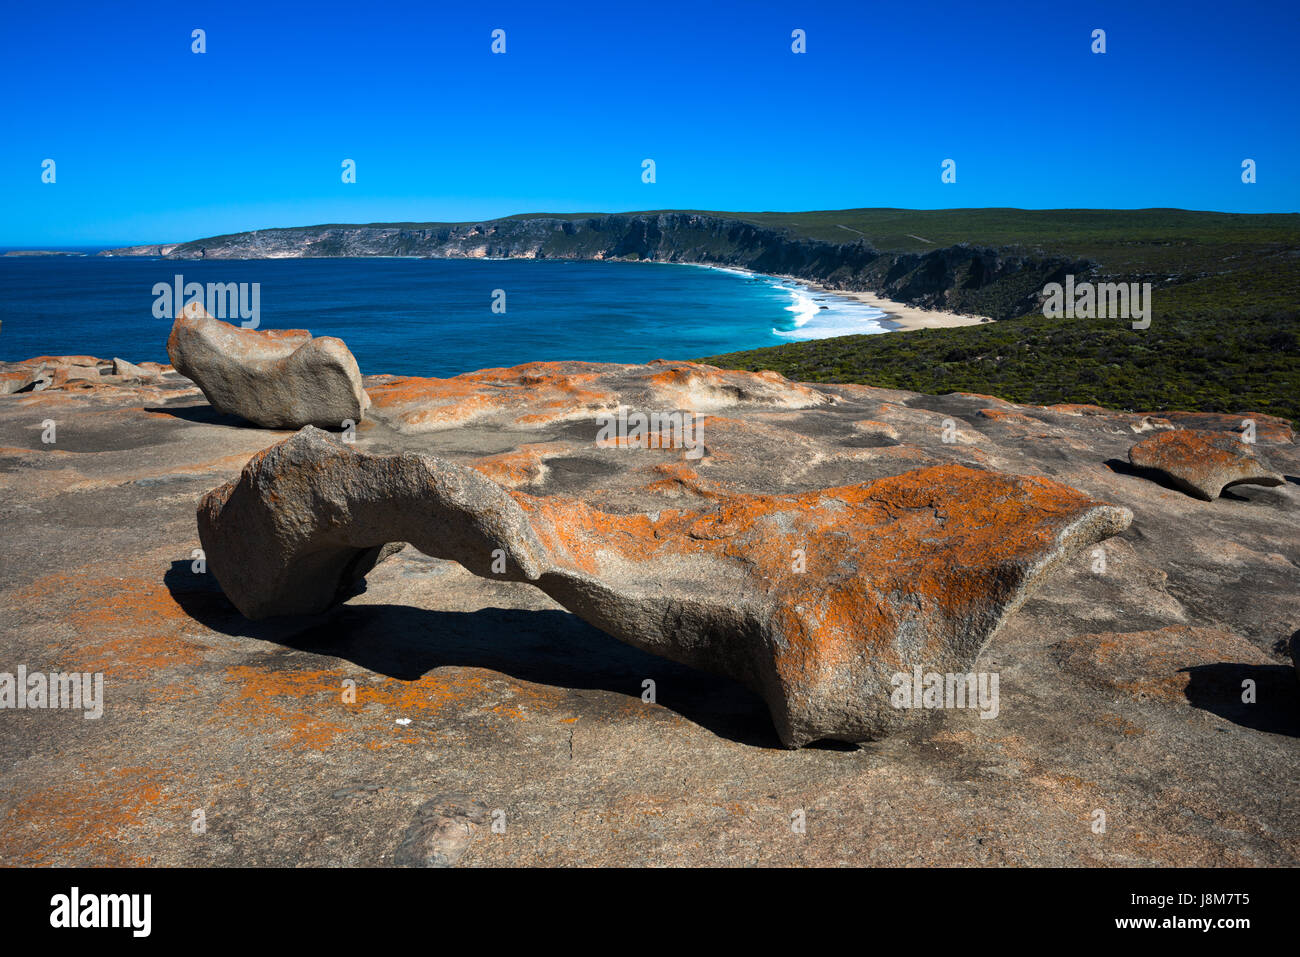 Remarkable Rocks, Flinders Chase National Park, Kangaroo Island, South Australia. - Stock Image